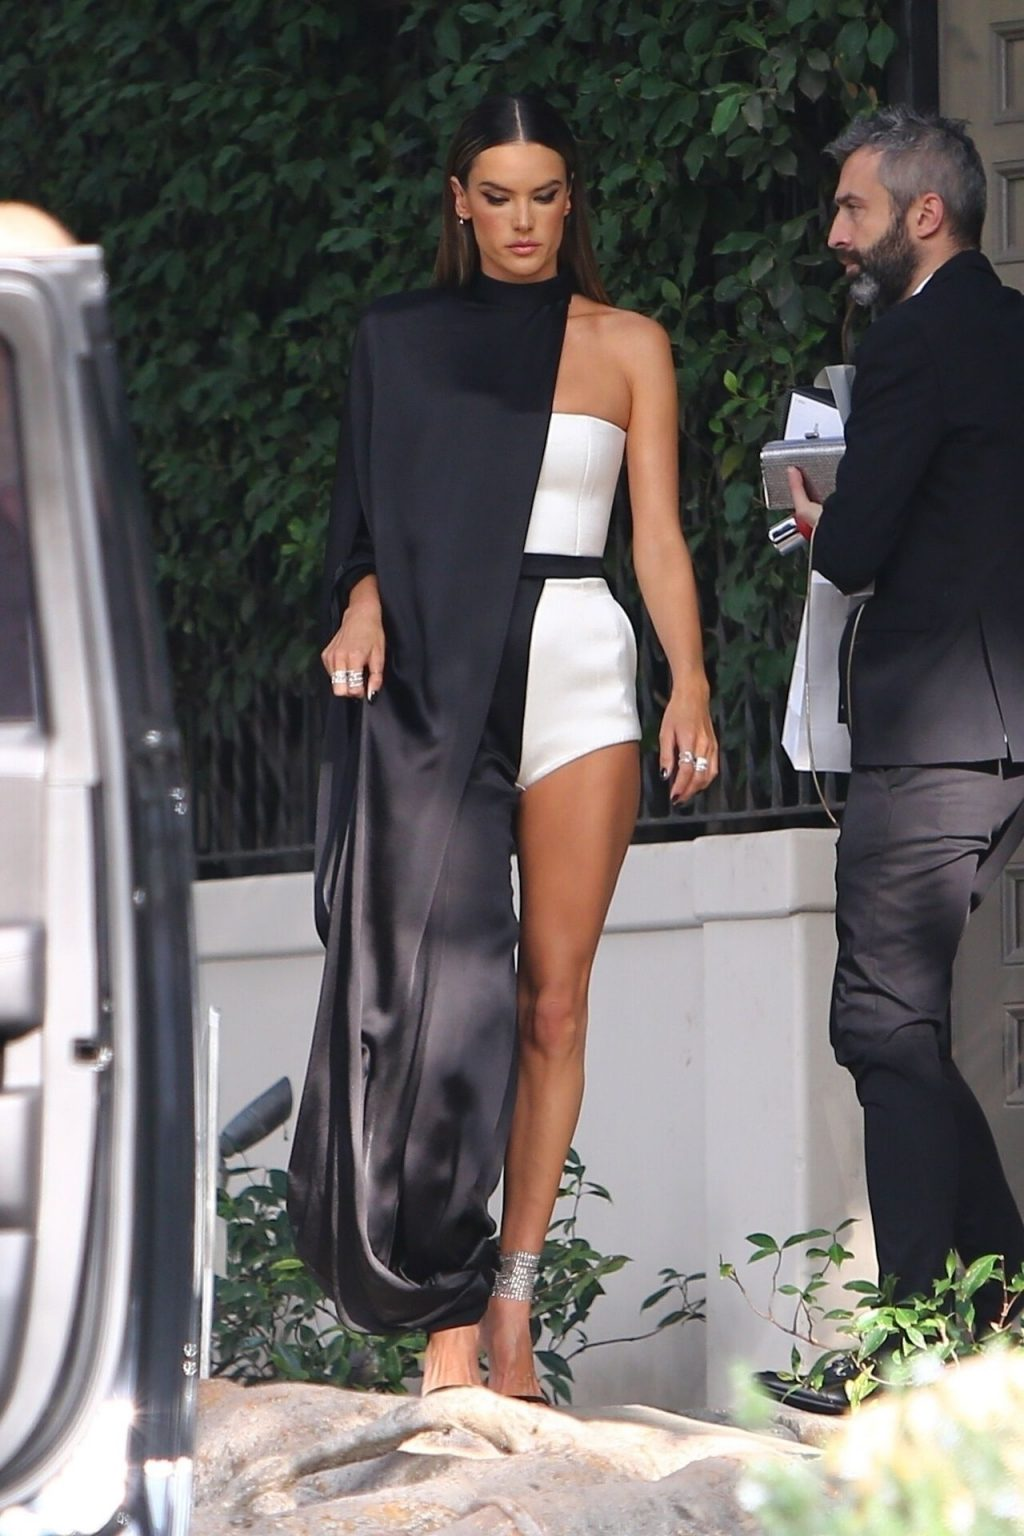 Alessandra Ambrosio Looks Stunning Ahead of the Grammys (22 Photos + Video)